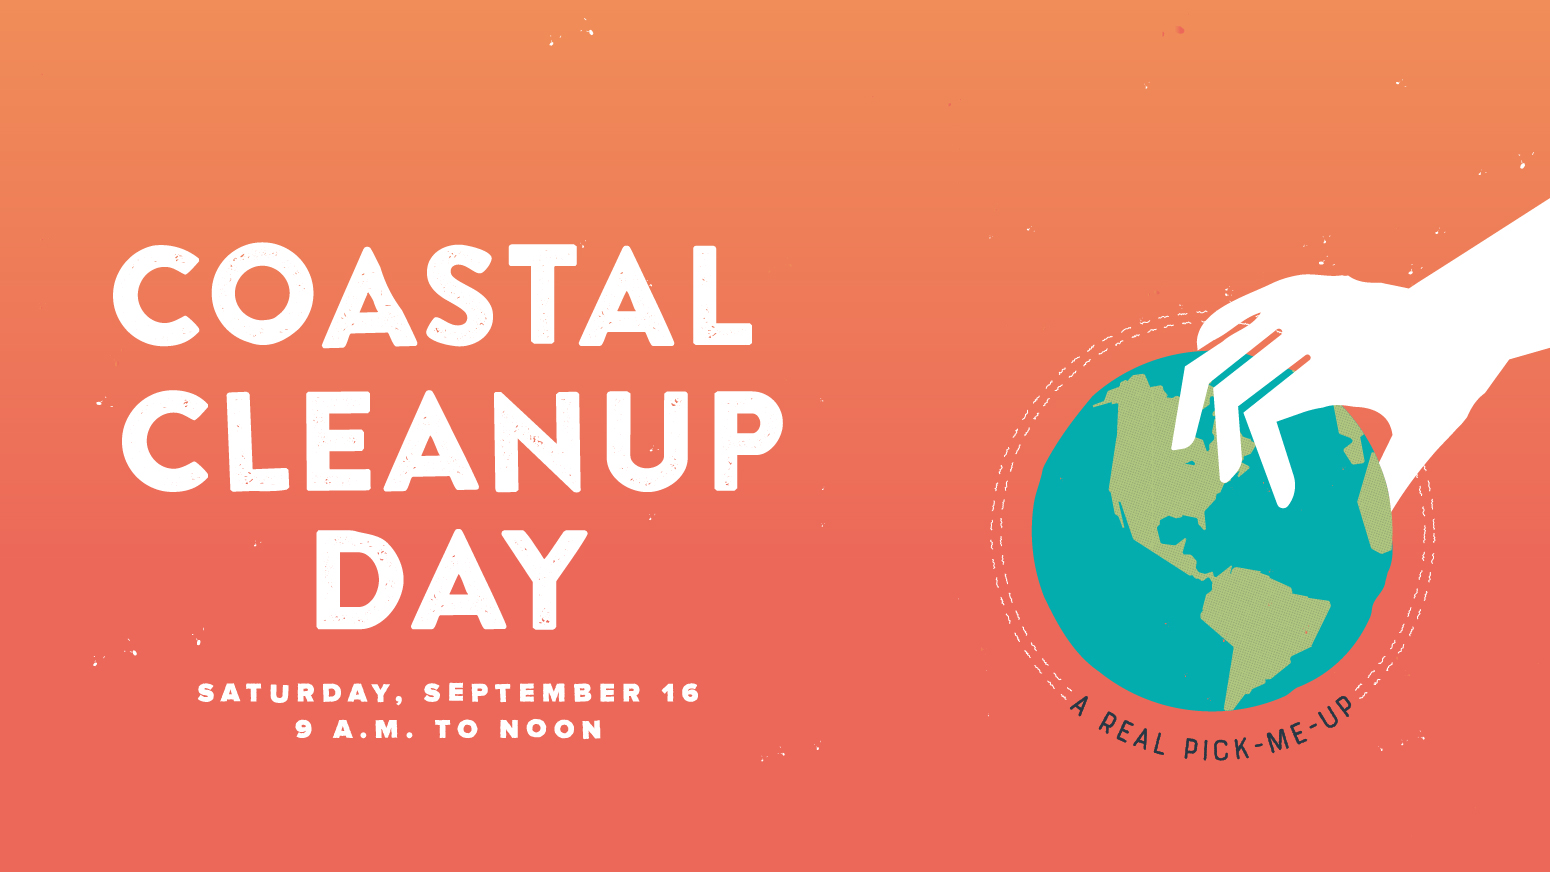 coastal-cleanup-day-banner-for-home-page